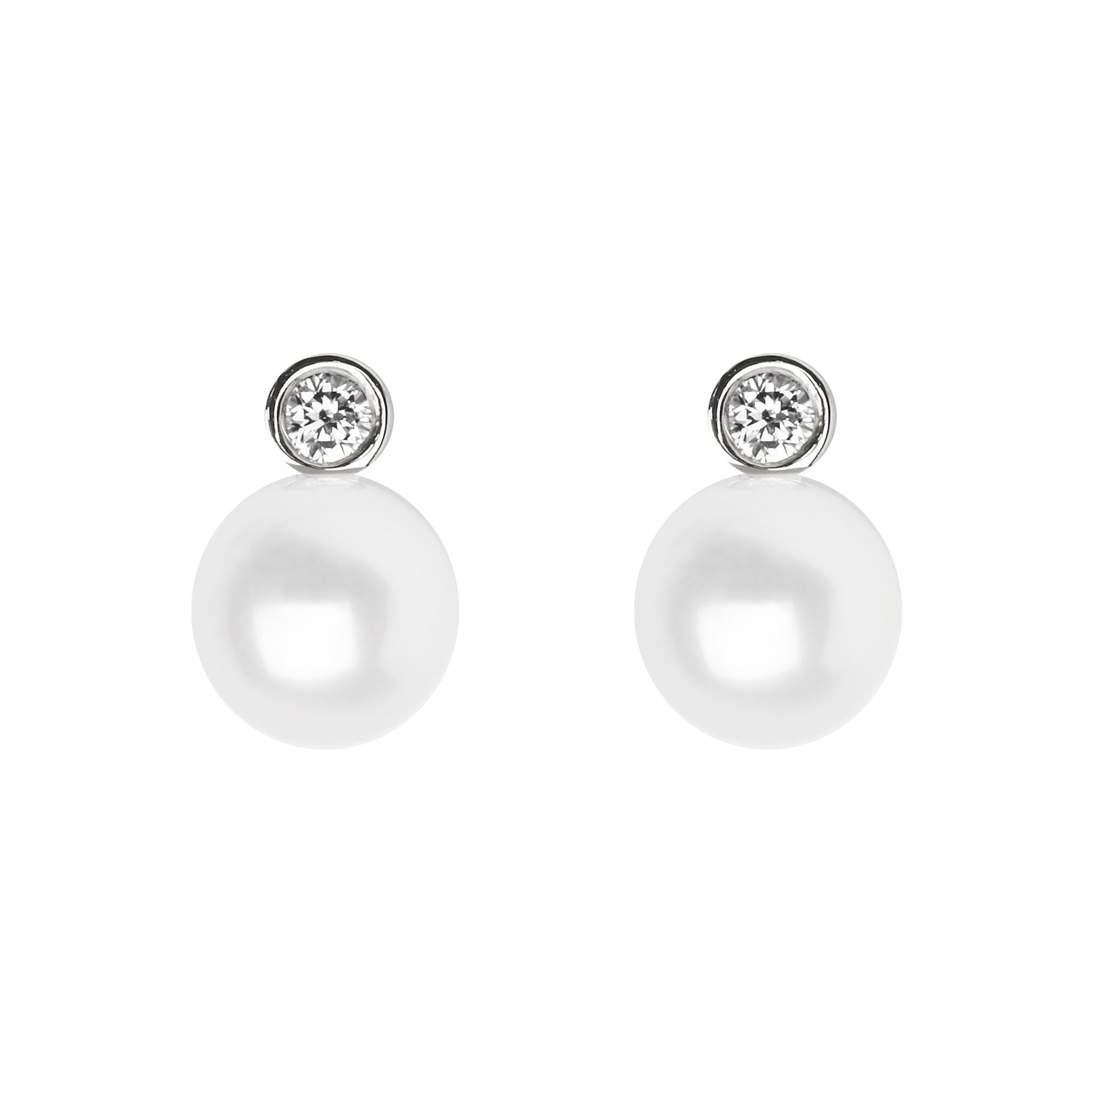 88b97220013350 Aspinal of London. Women's Bridal March Diamond & Pearl Stud Earrings